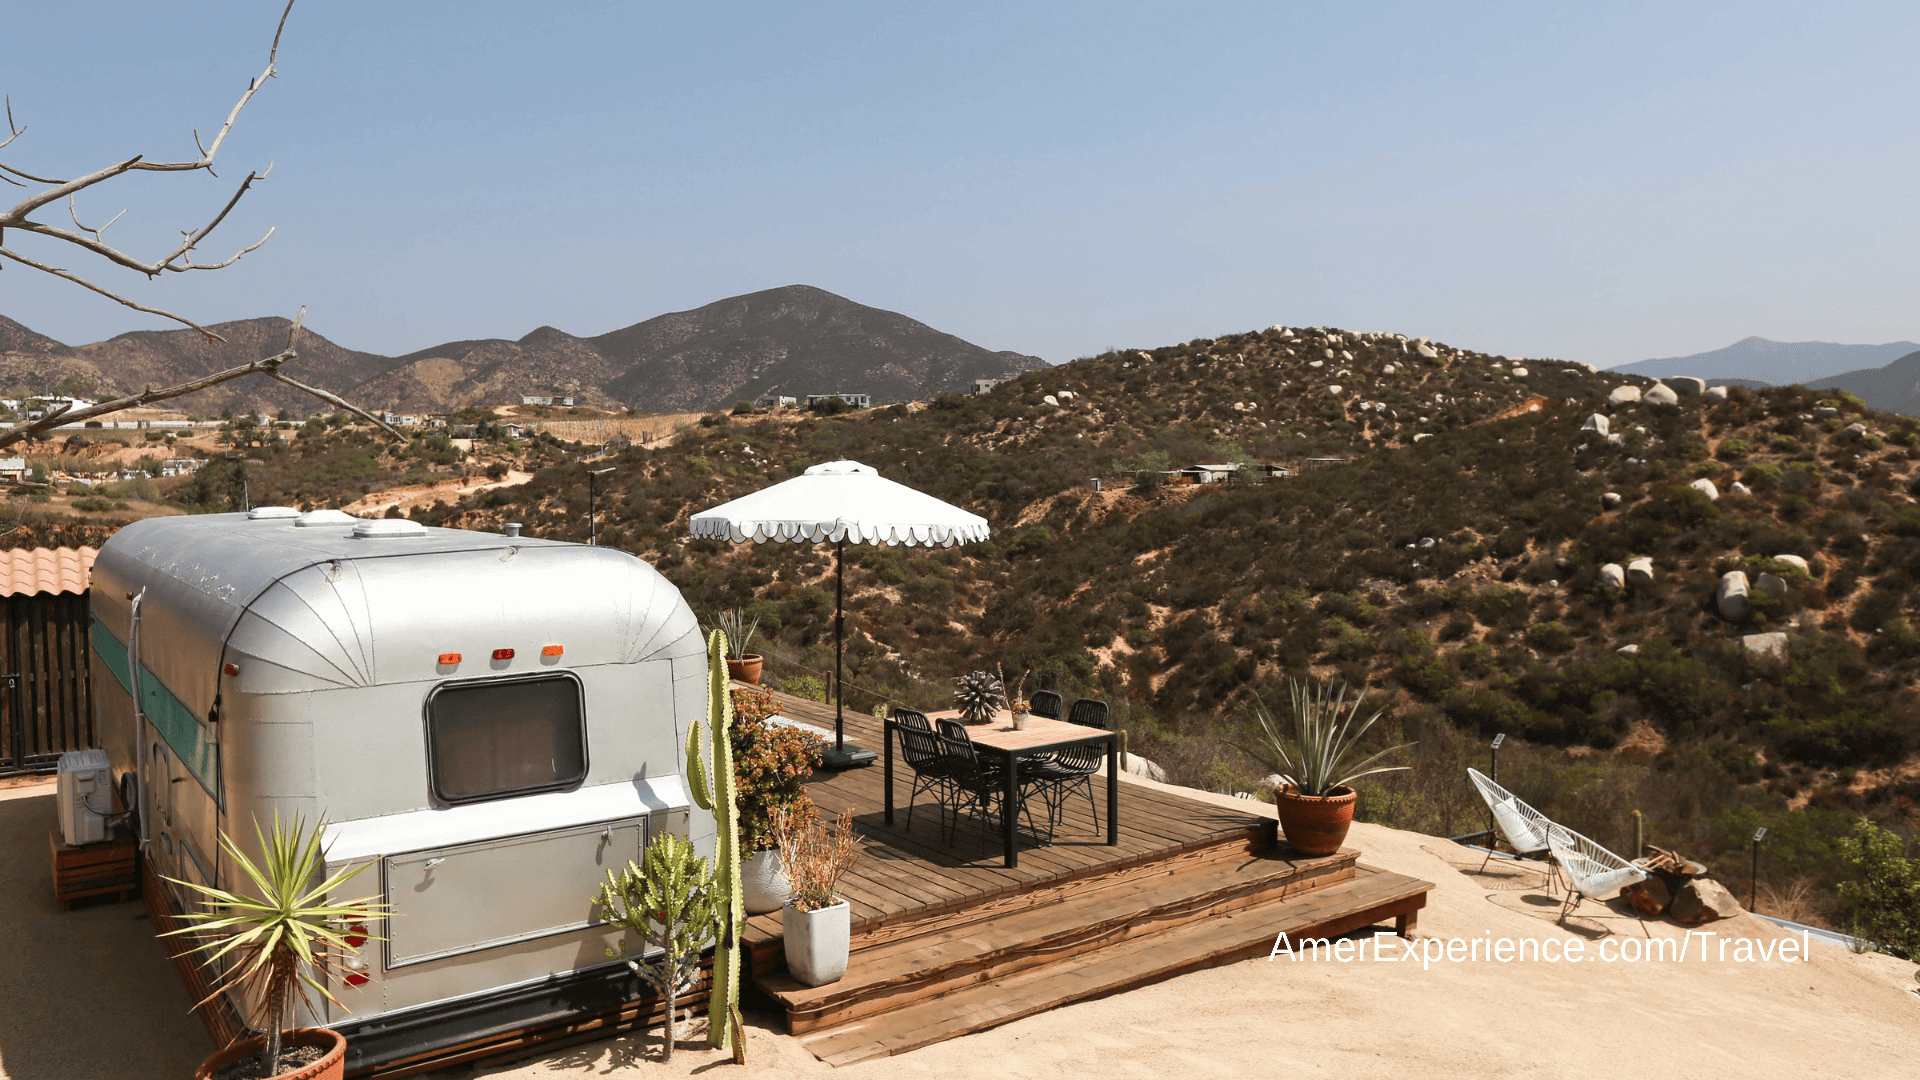 Living the stream: glamping in an American Airstream trailer … in Somerset